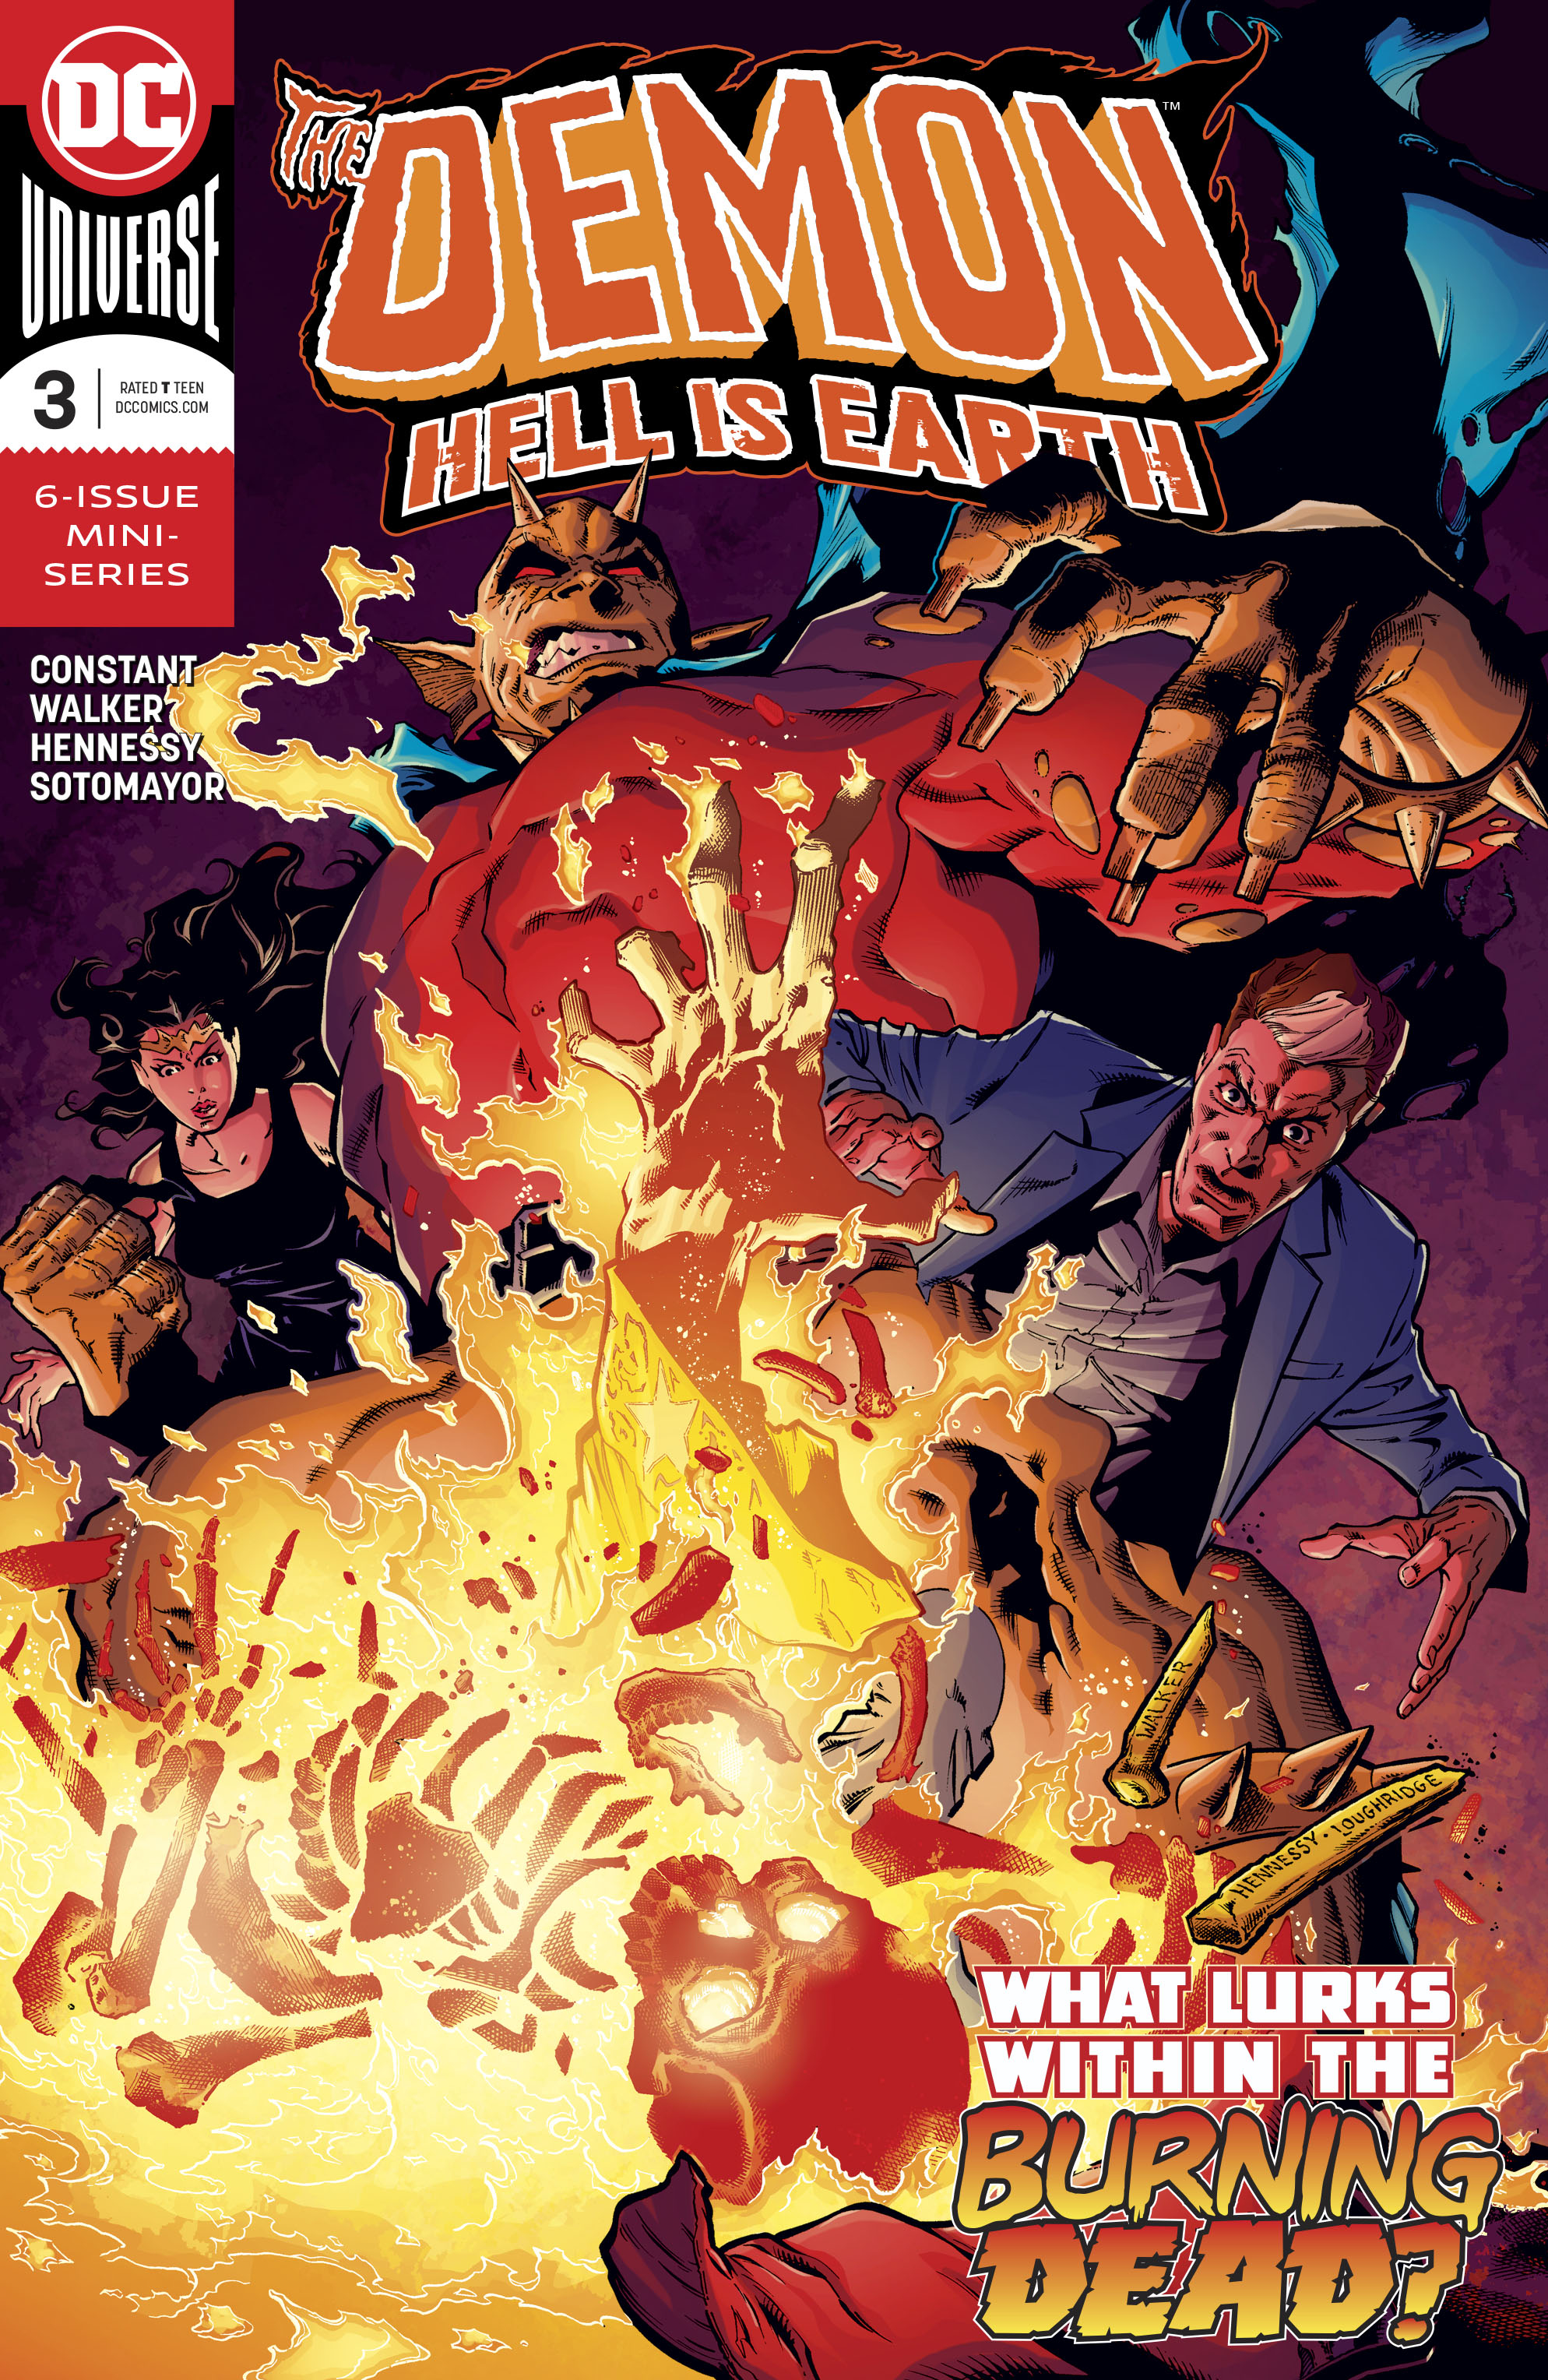 DEMON HELL IS EARTH #3